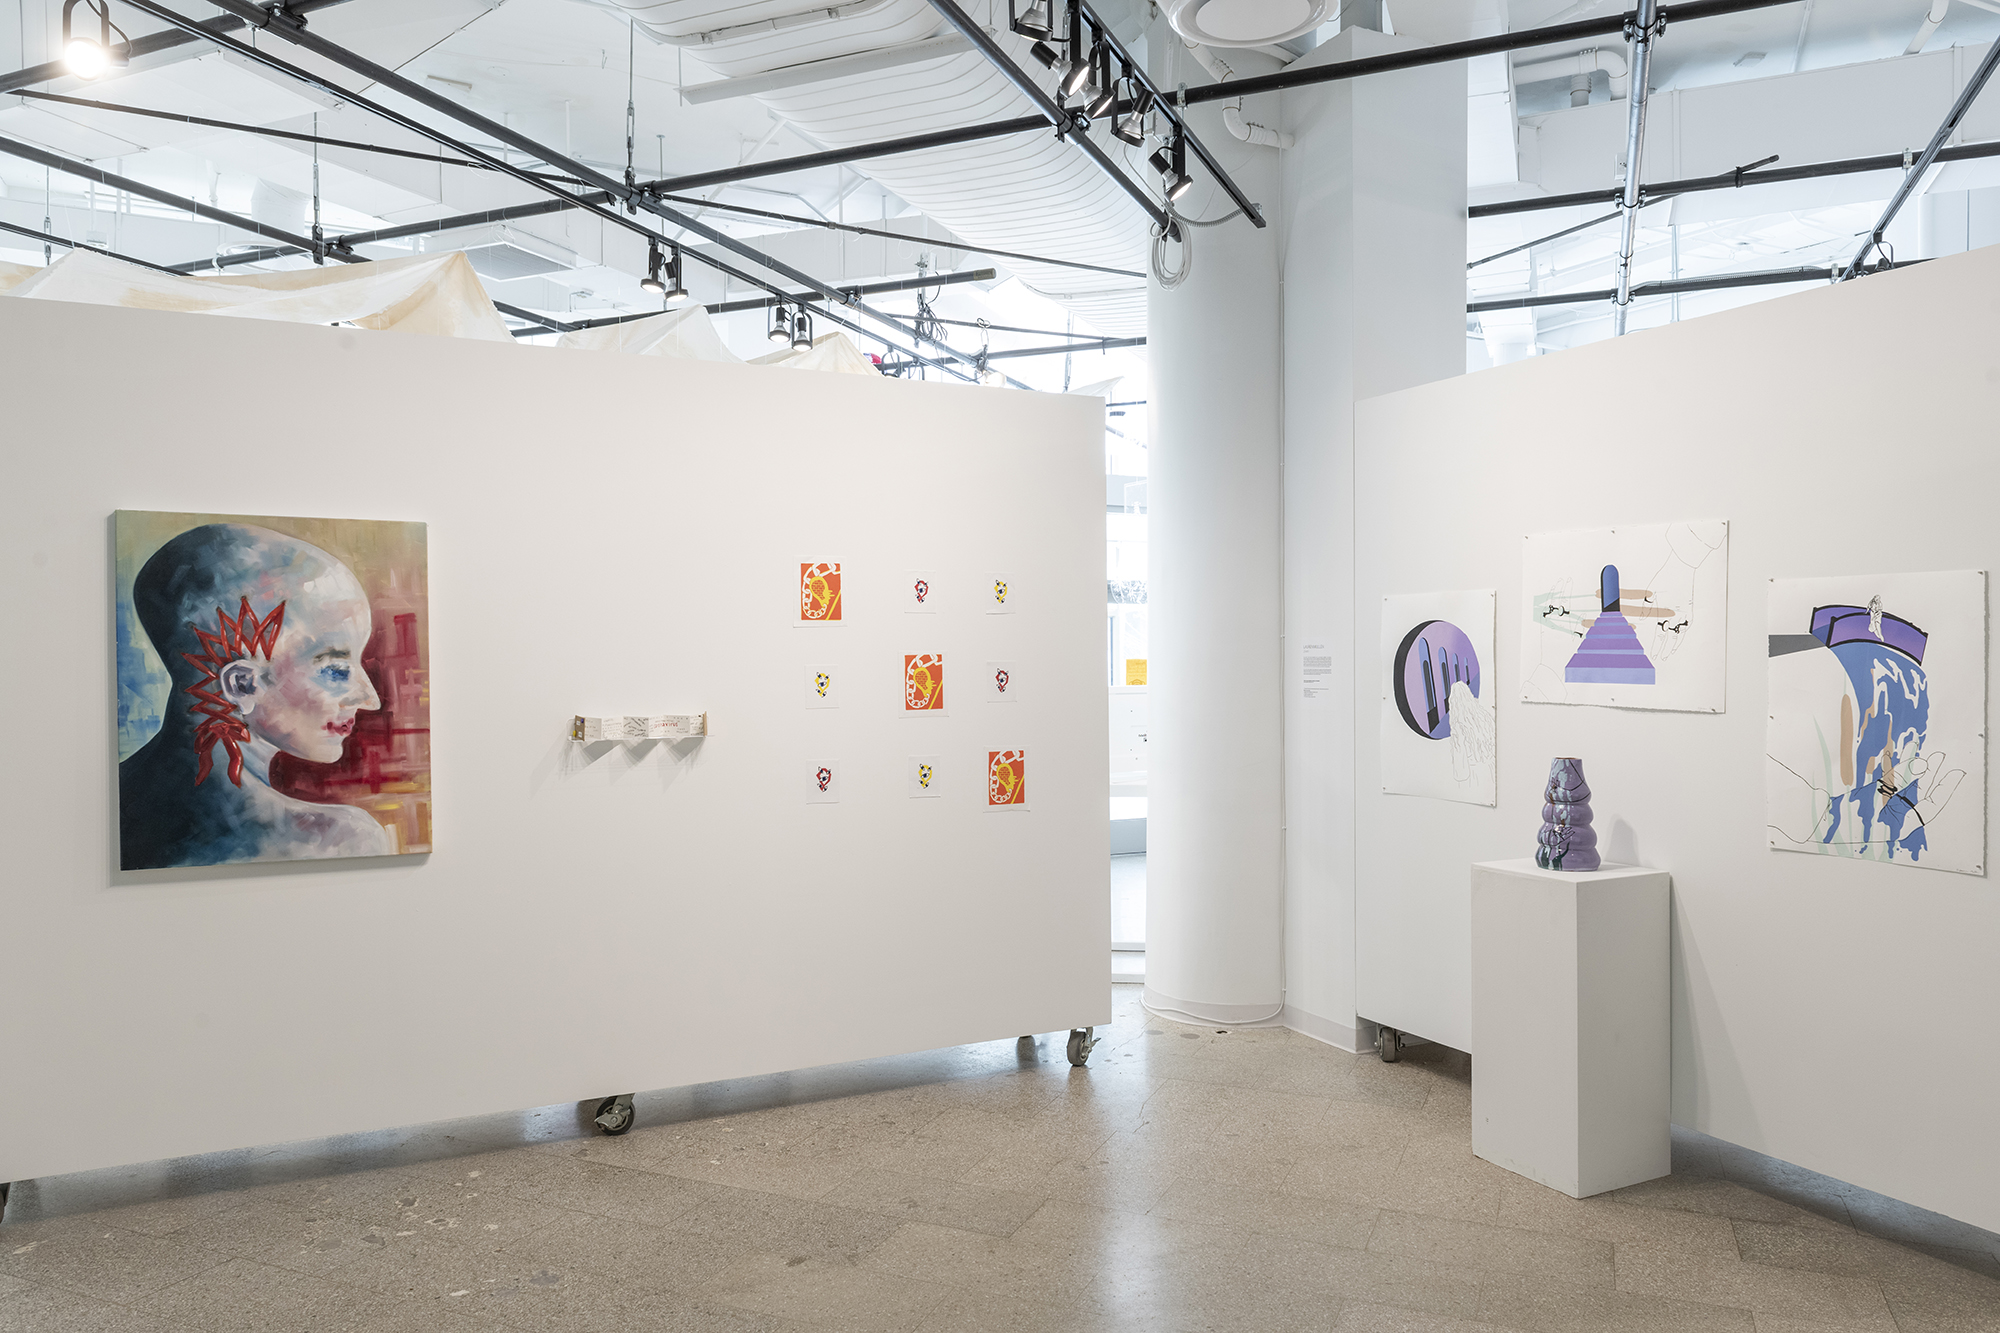 Two gallery walls display colorful paintings.